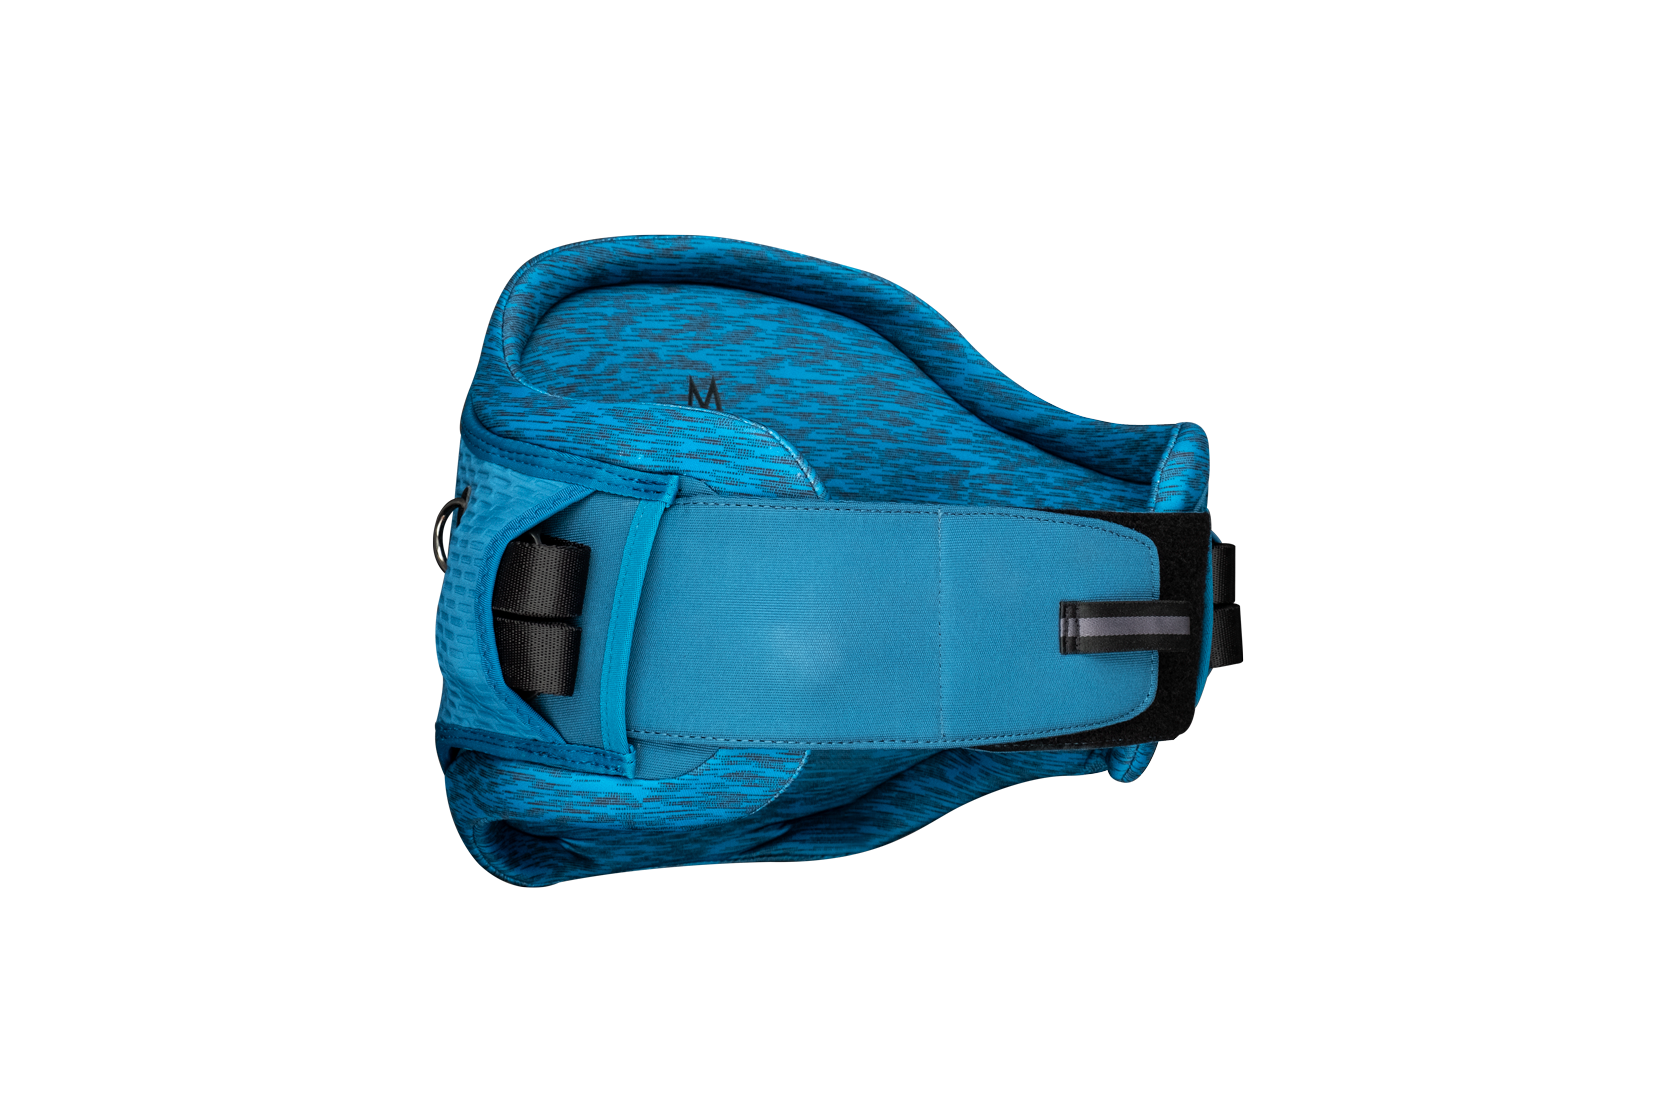 21_AK_Synth Waist Harness_Teal_img-04